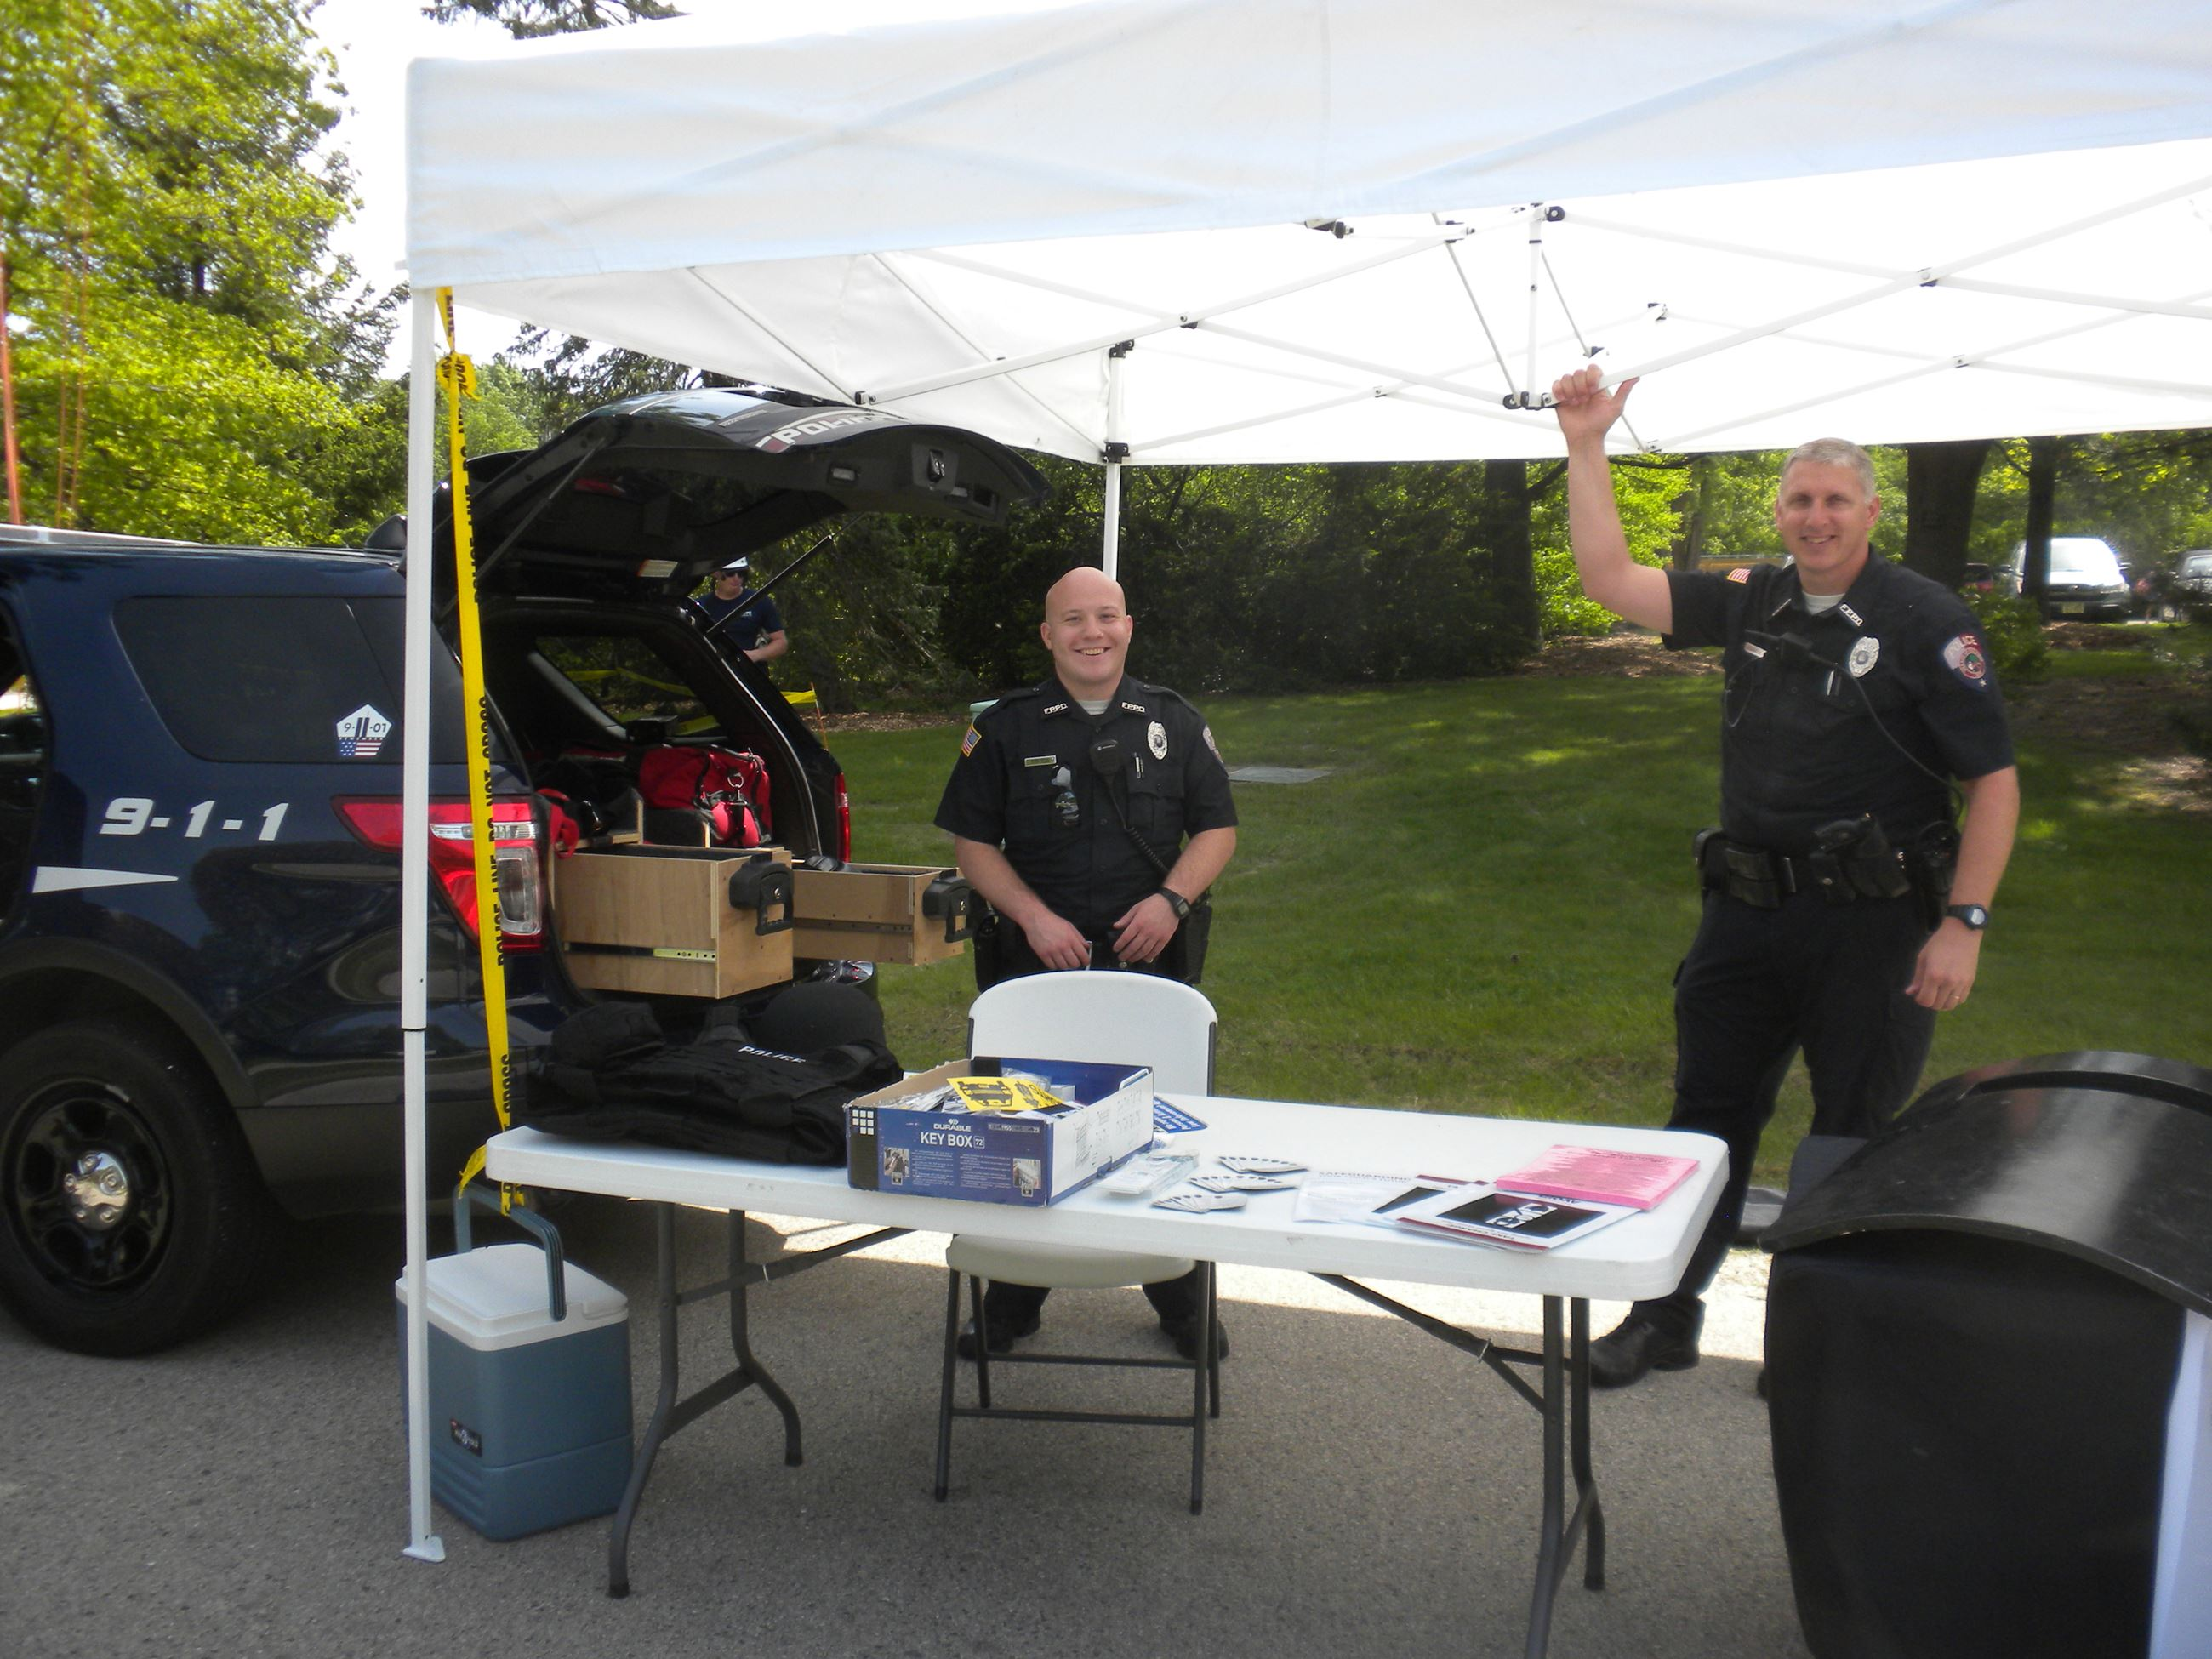 Police Officers setting up tent at the Open House